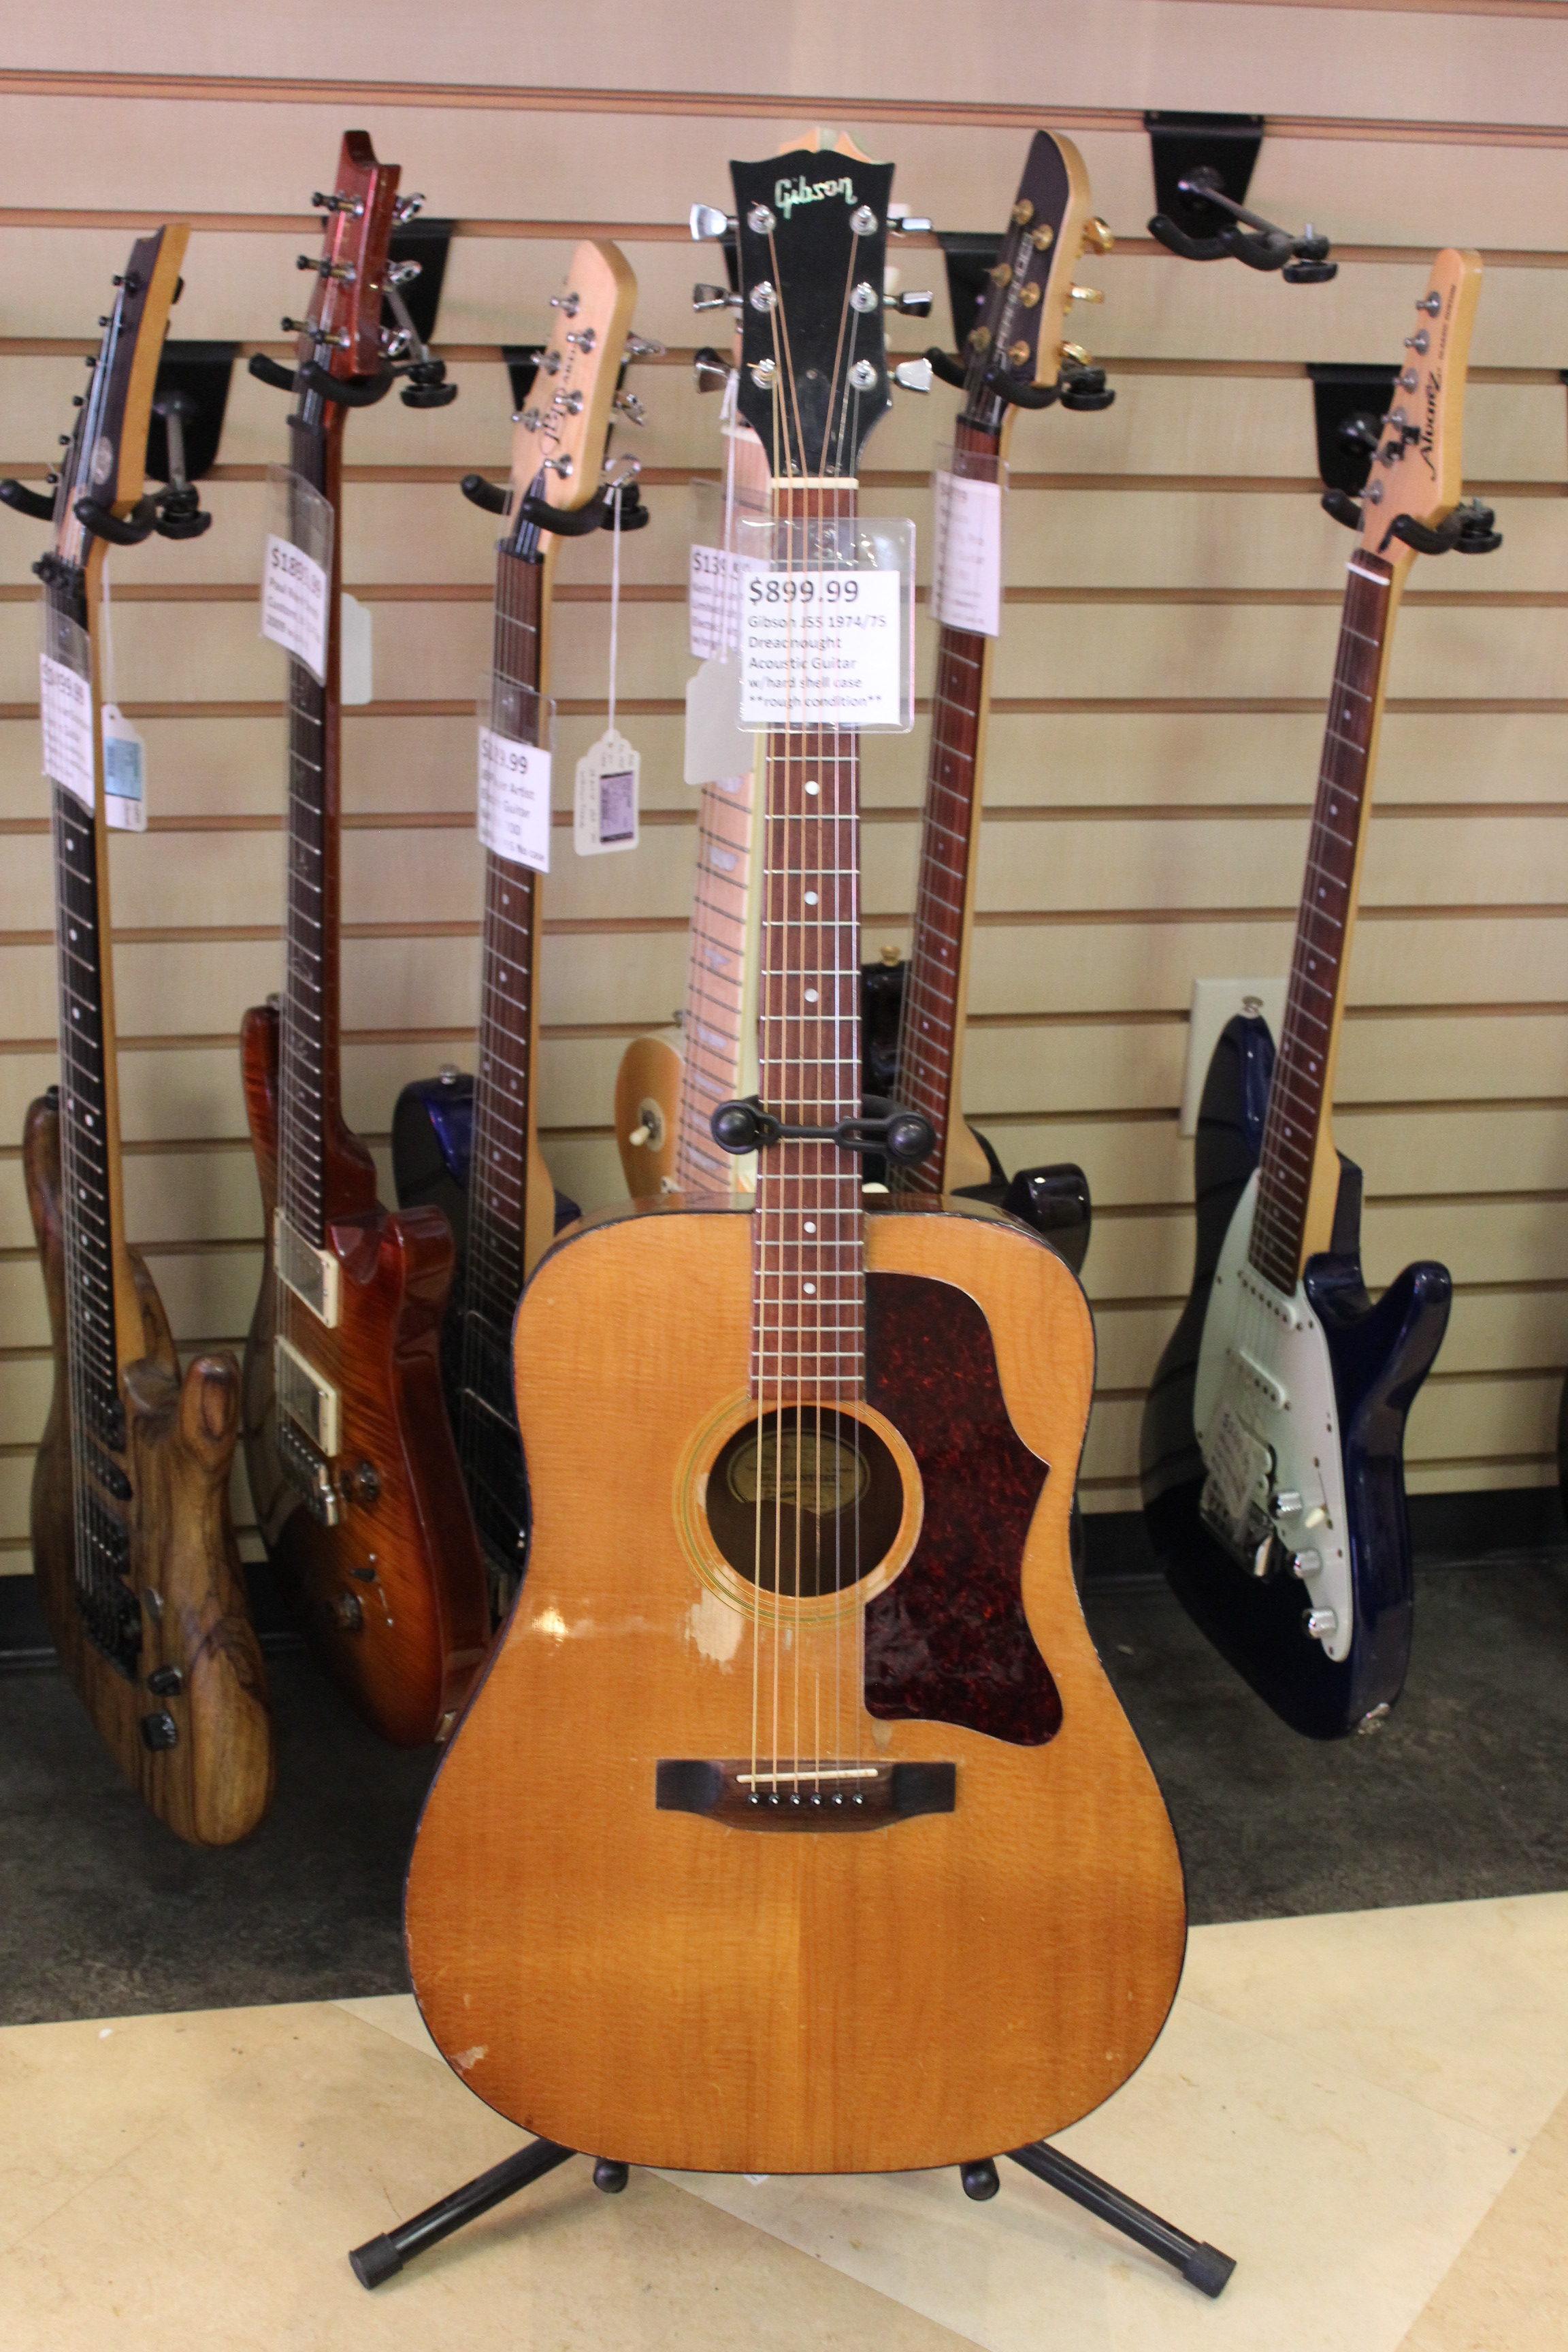 gibson j55 dreadnought 1974 75 acoustic guitar used ted 39 s pawn shop. Black Bedroom Furniture Sets. Home Design Ideas